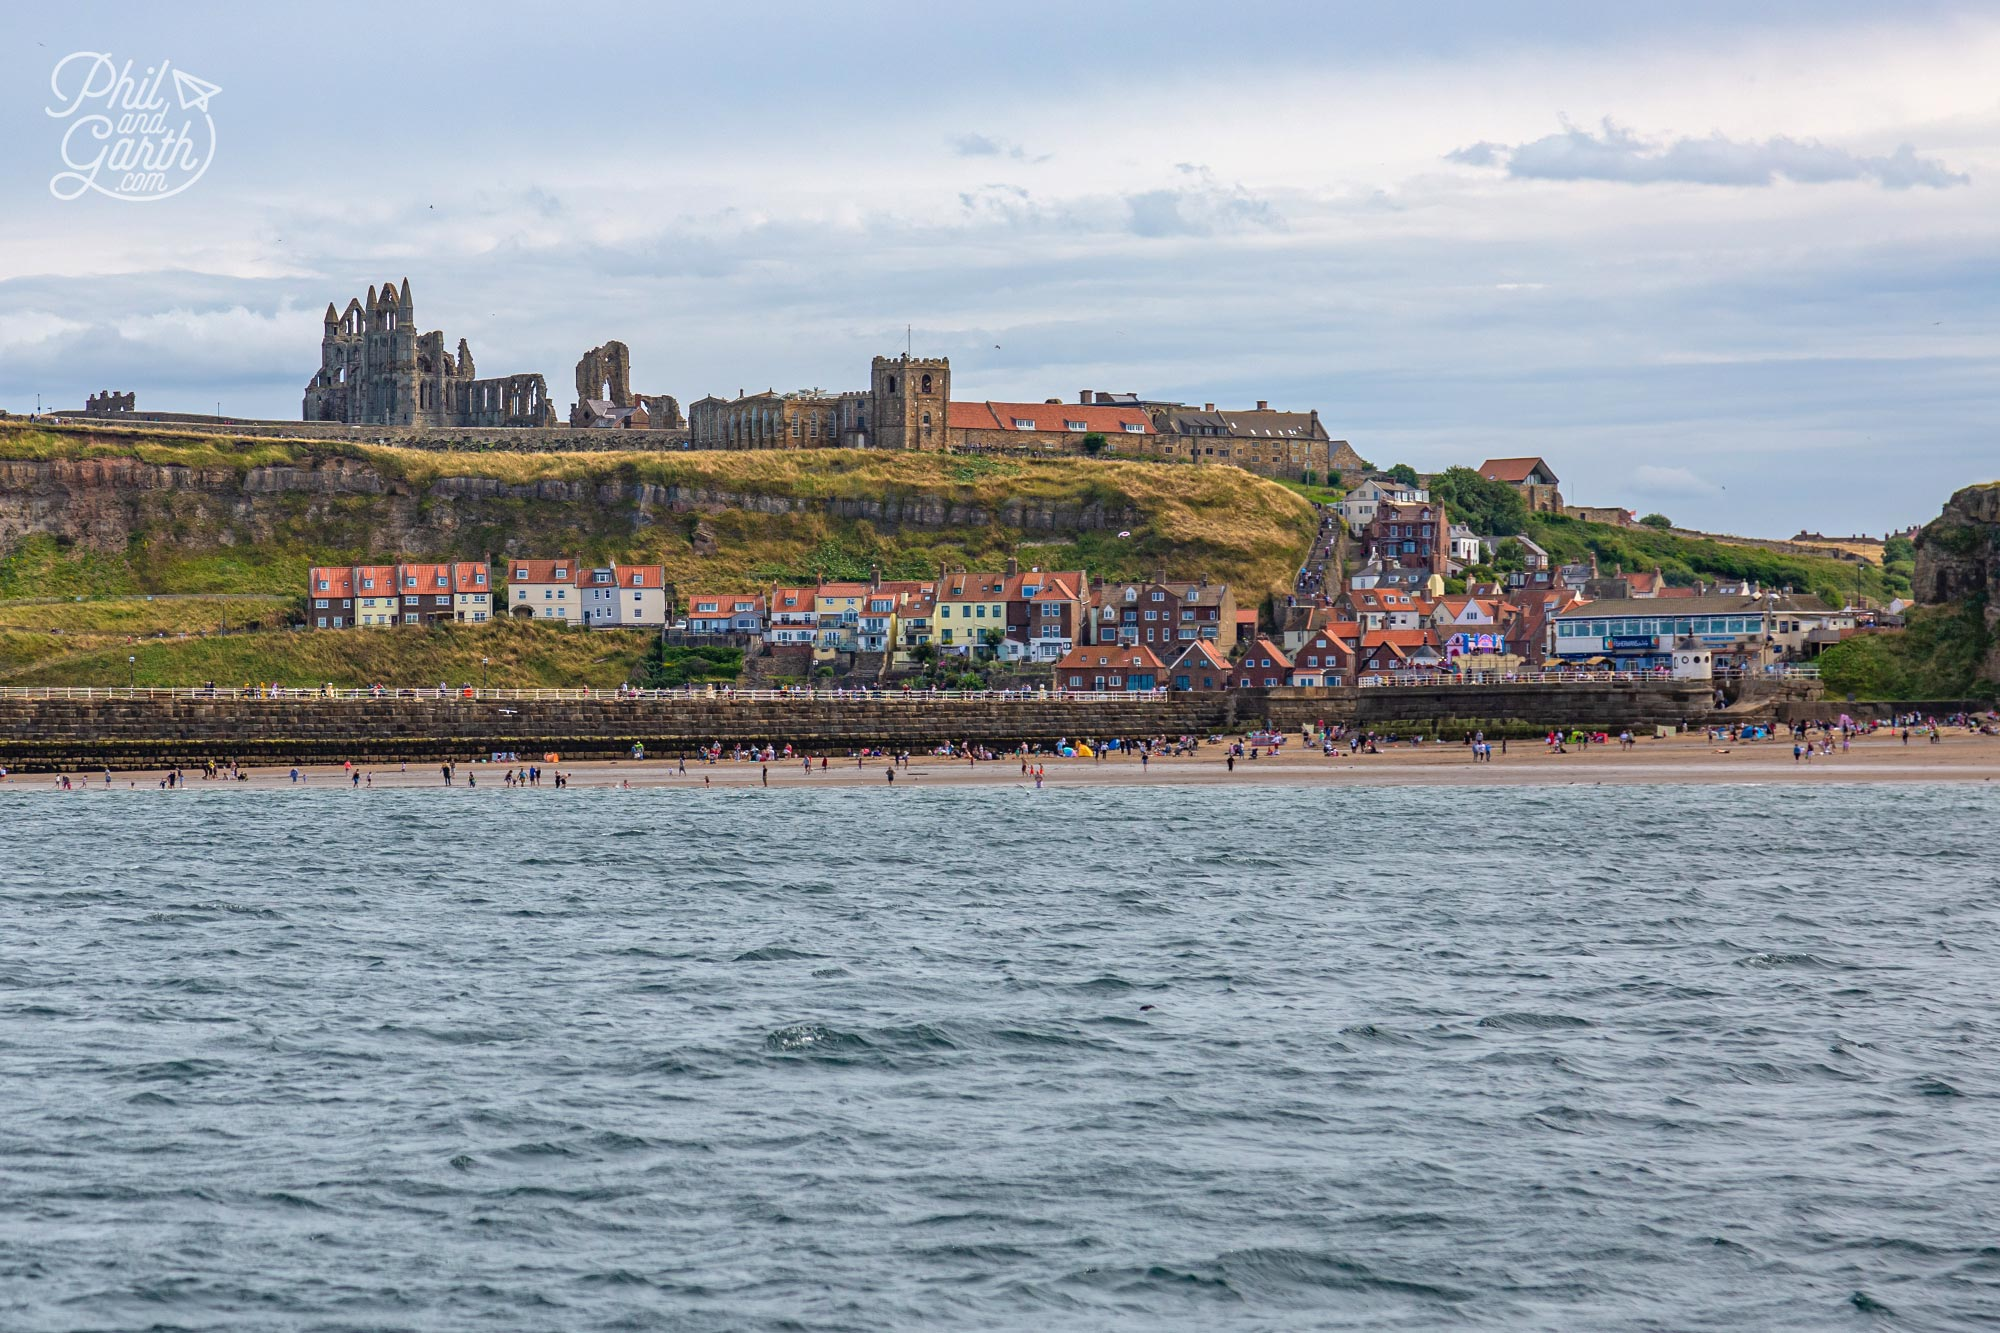 Looking back at Whitby from our boat ride on the North Sea